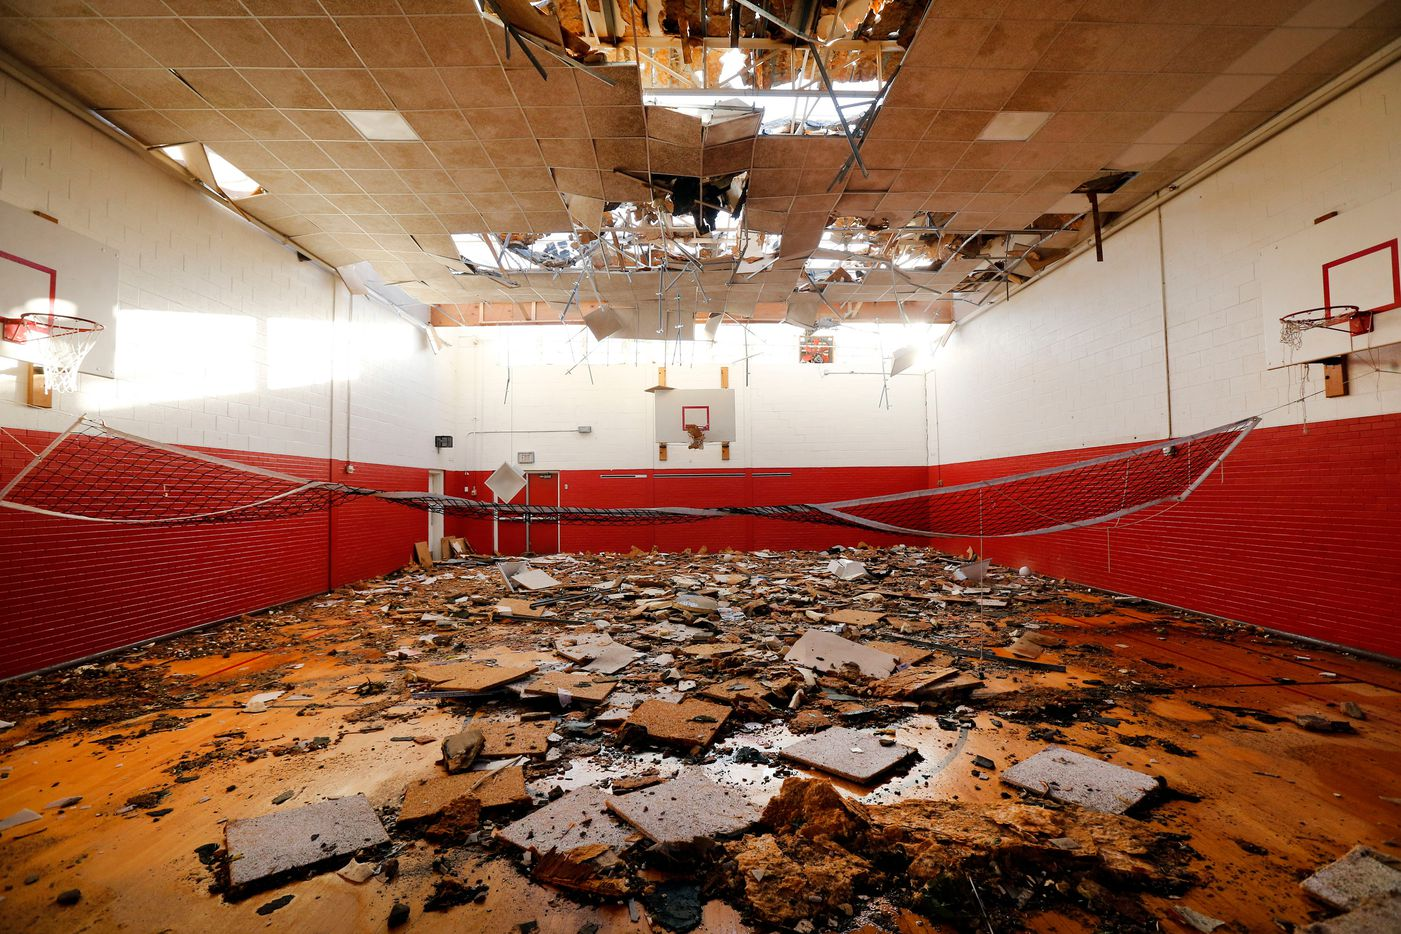 The gymnasium at Cary Jr. High School in Dallas, was damaged by a tornado, Monday, October 21, 2019. (Tom Fox/The Dallas Morning News)